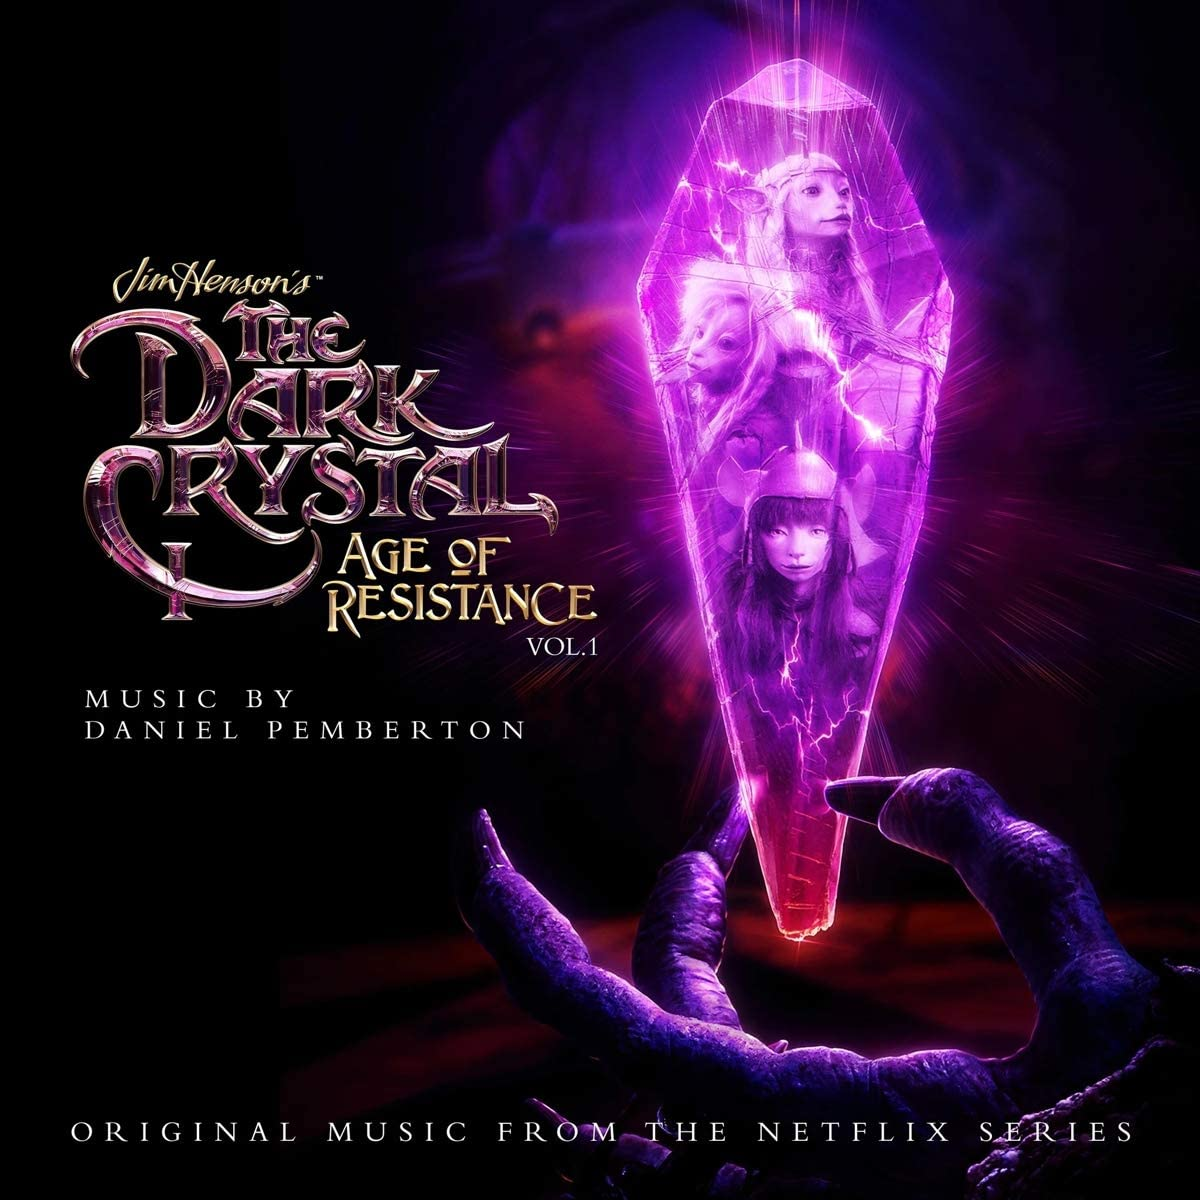 Daniel Pemberton - The Dark Crystal: Age Of Resistance Vol. 1 (Ltd RSD 2020 LP)